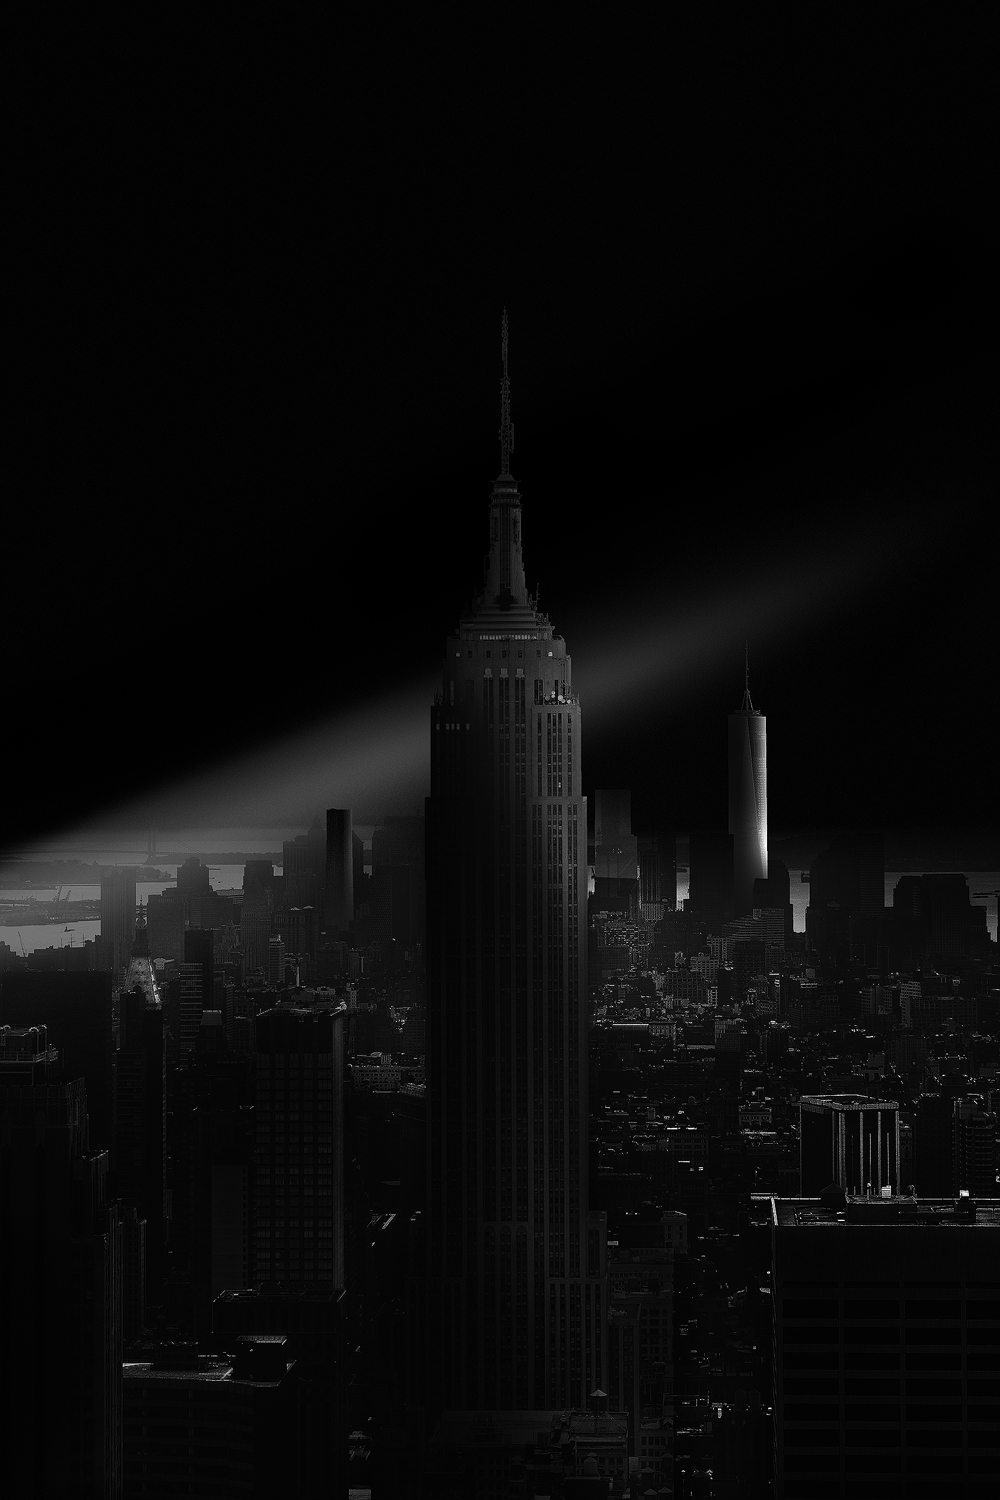 GOTHAM:The Empire, 2015, New York - Beyond Monochrome Exhibit